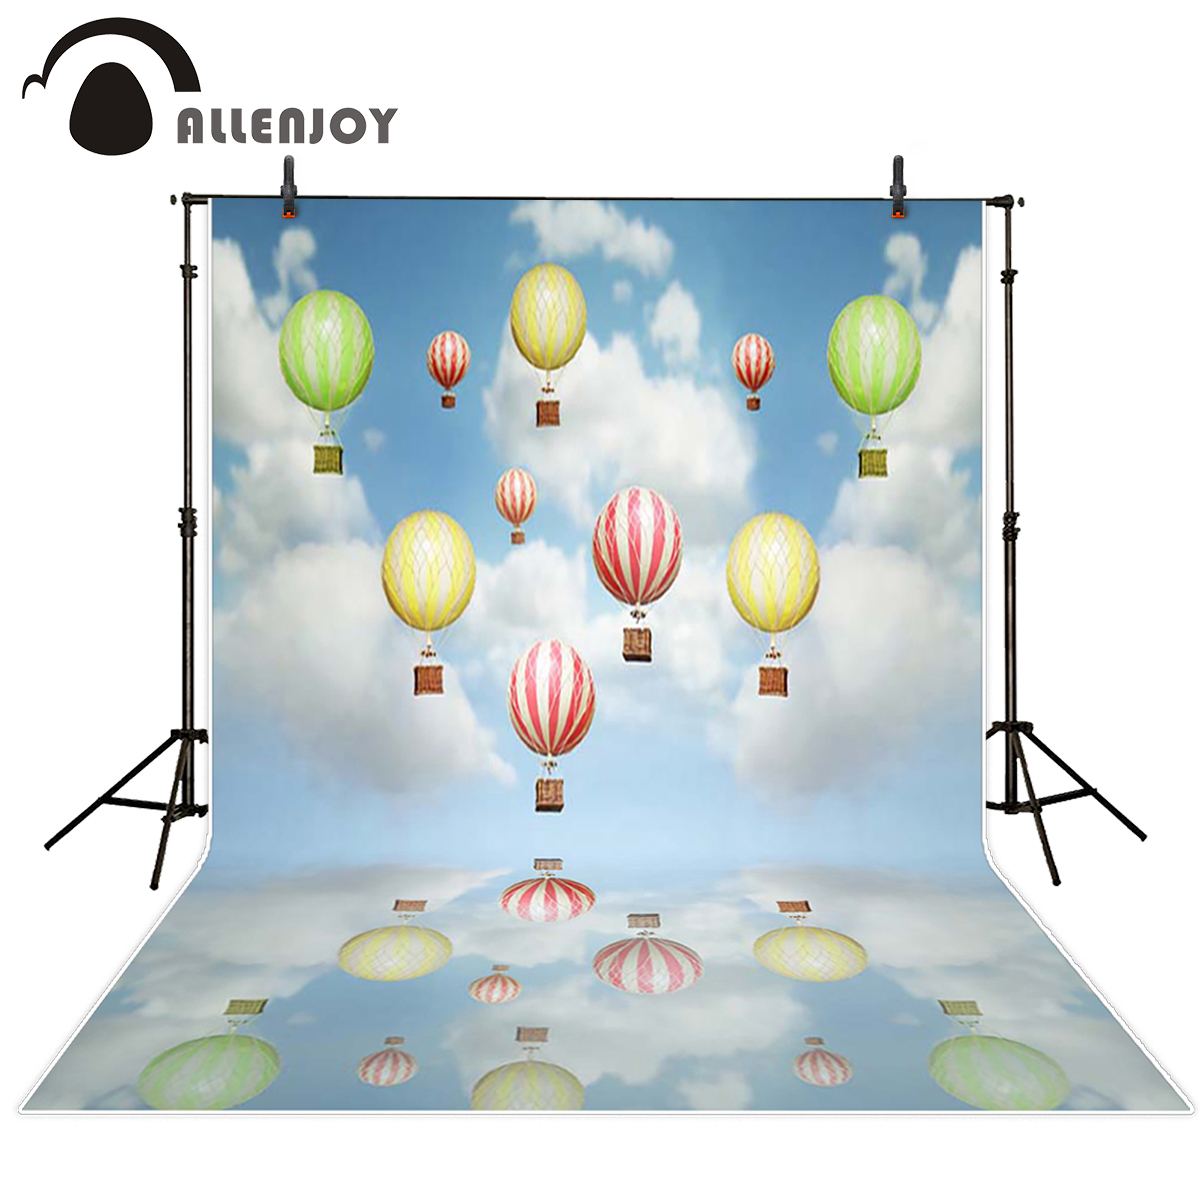 Allenjoy baby background Sky hot air balloon reflection cute for children photography backdrops For a photo shoot photocall